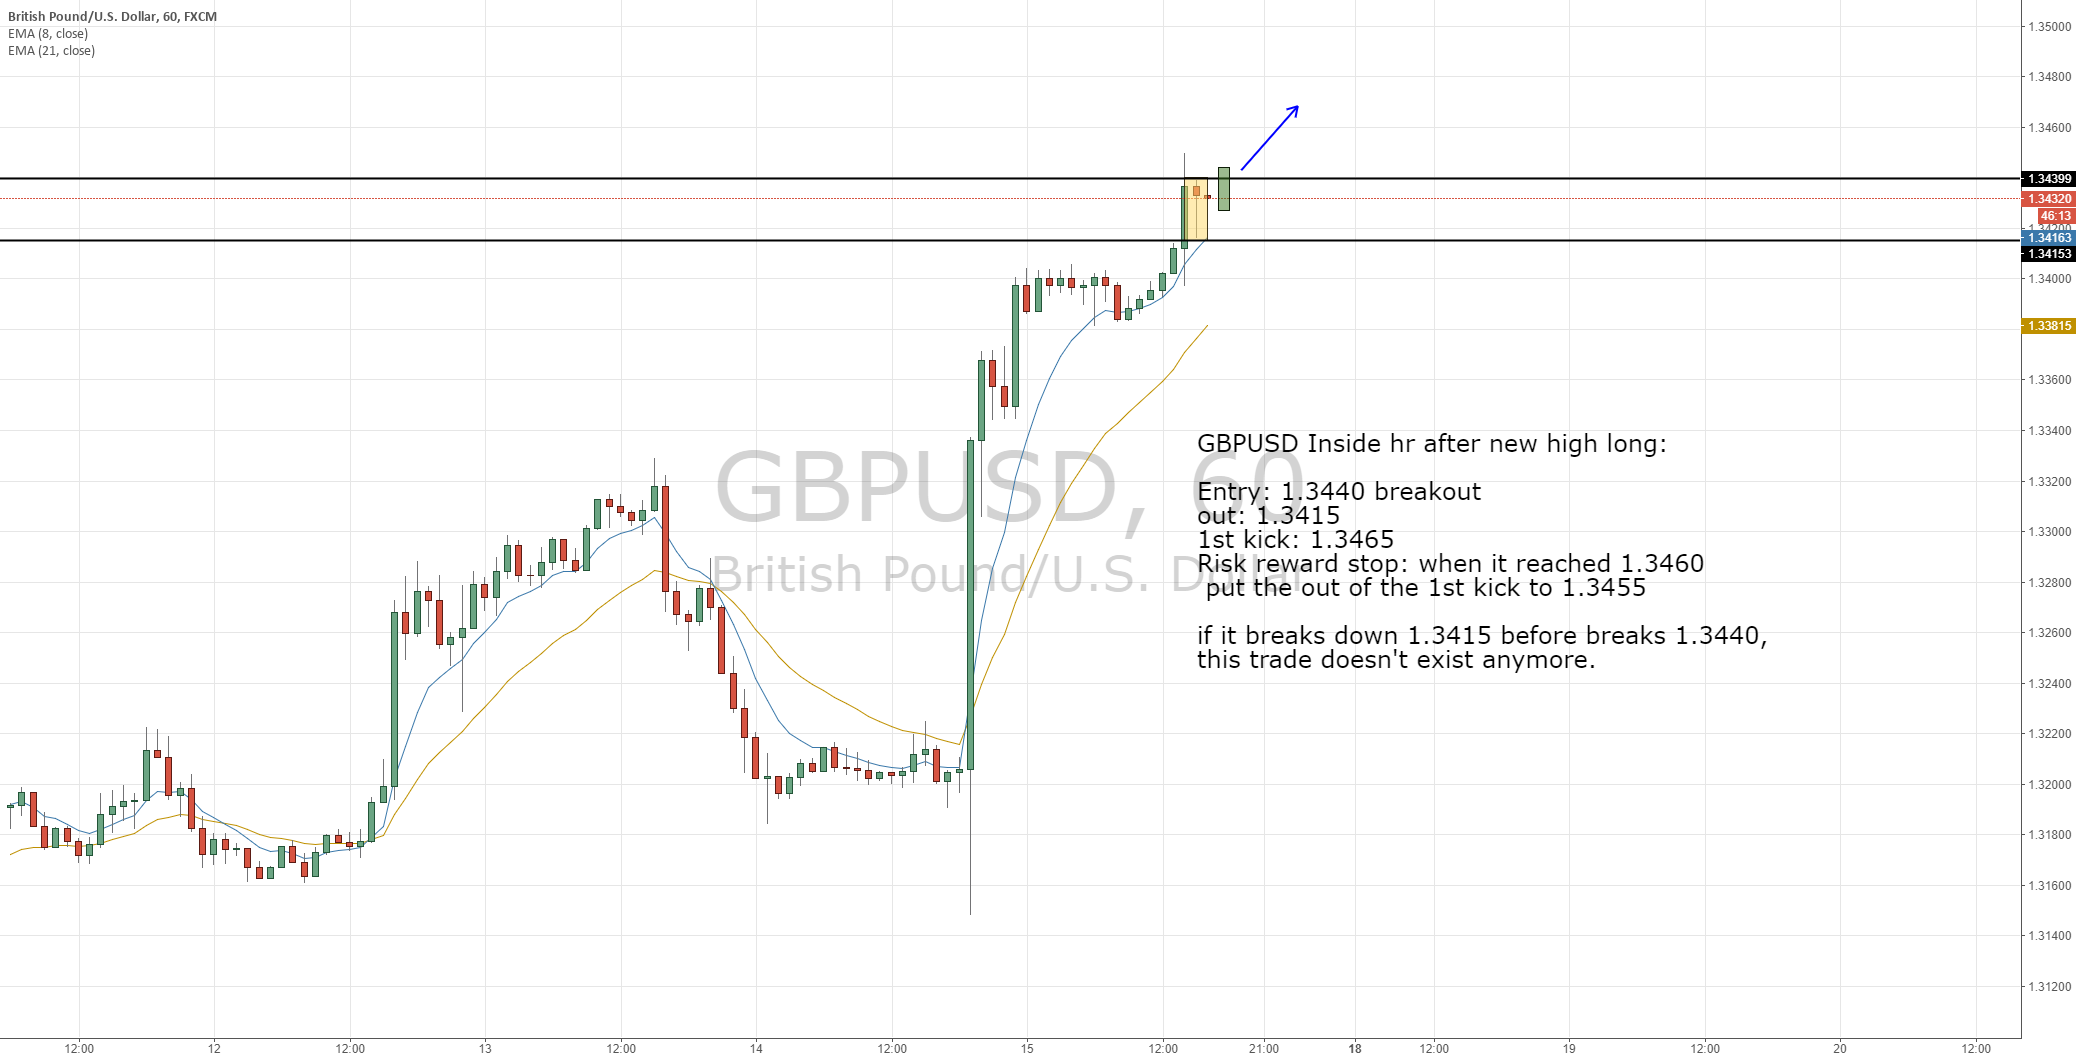 GBPUSD, inside hr after new high long